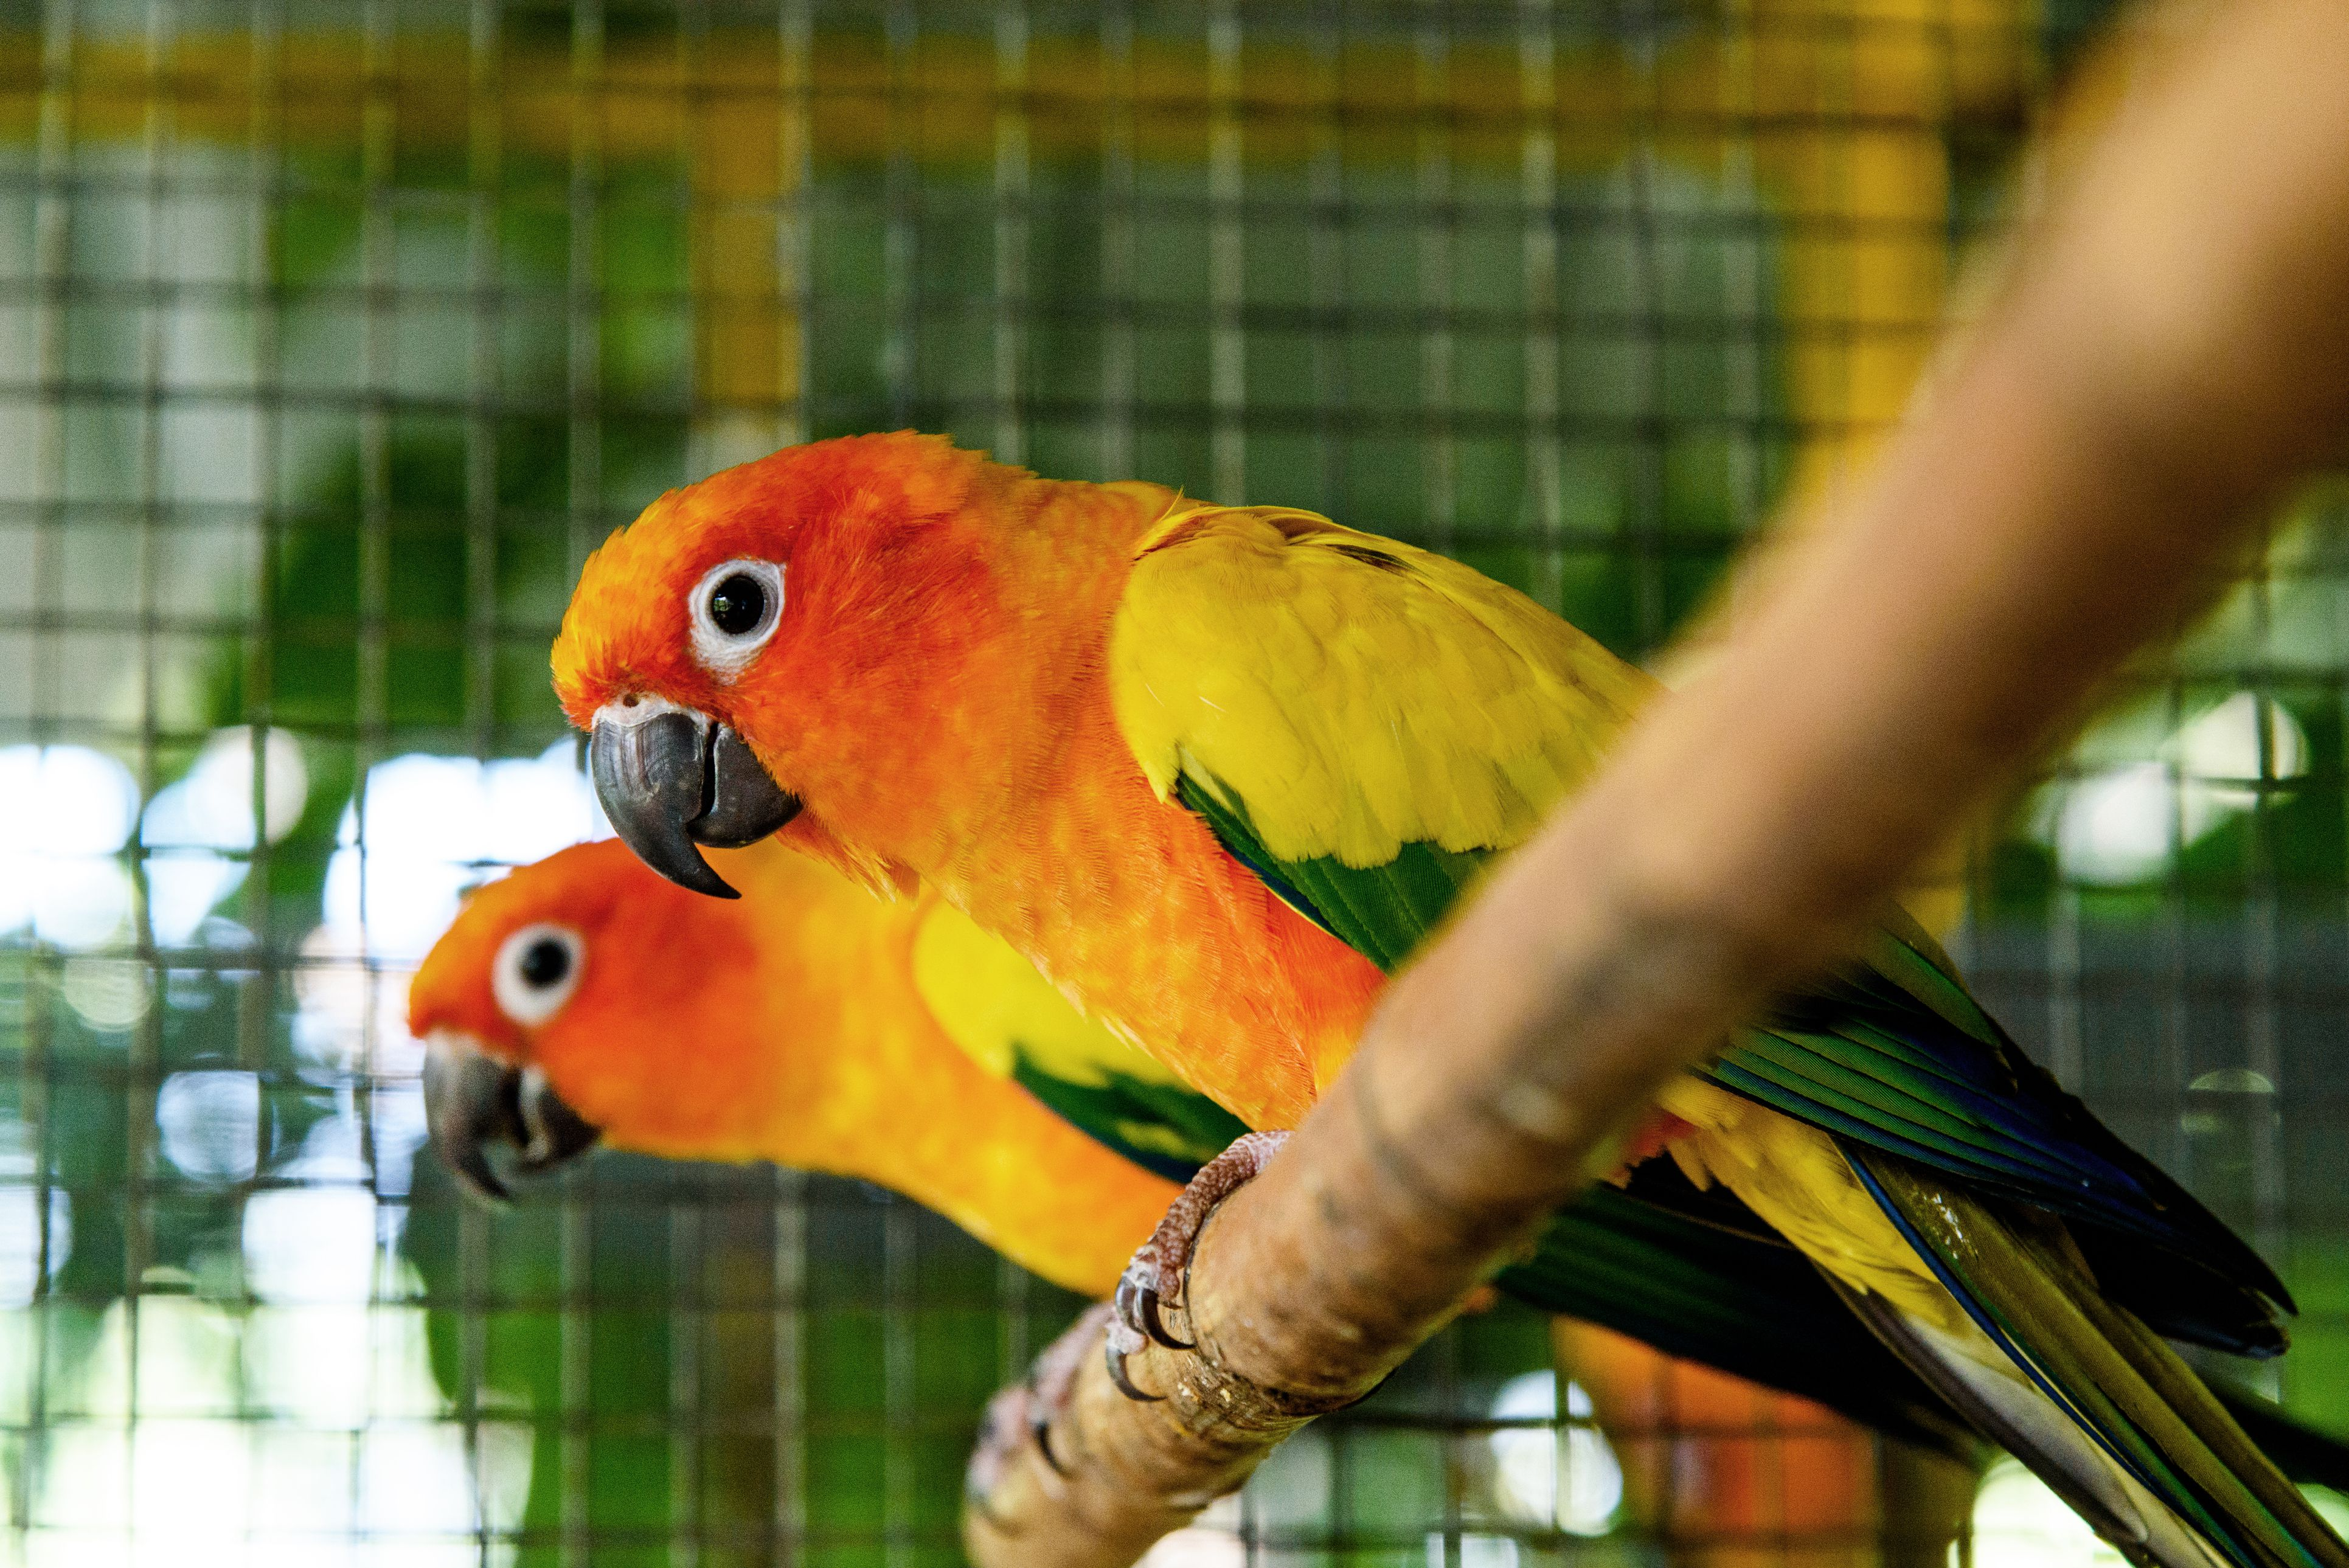 Close-Up Of a pair of Sun Conure parrots Perching On Branch In Birdcage